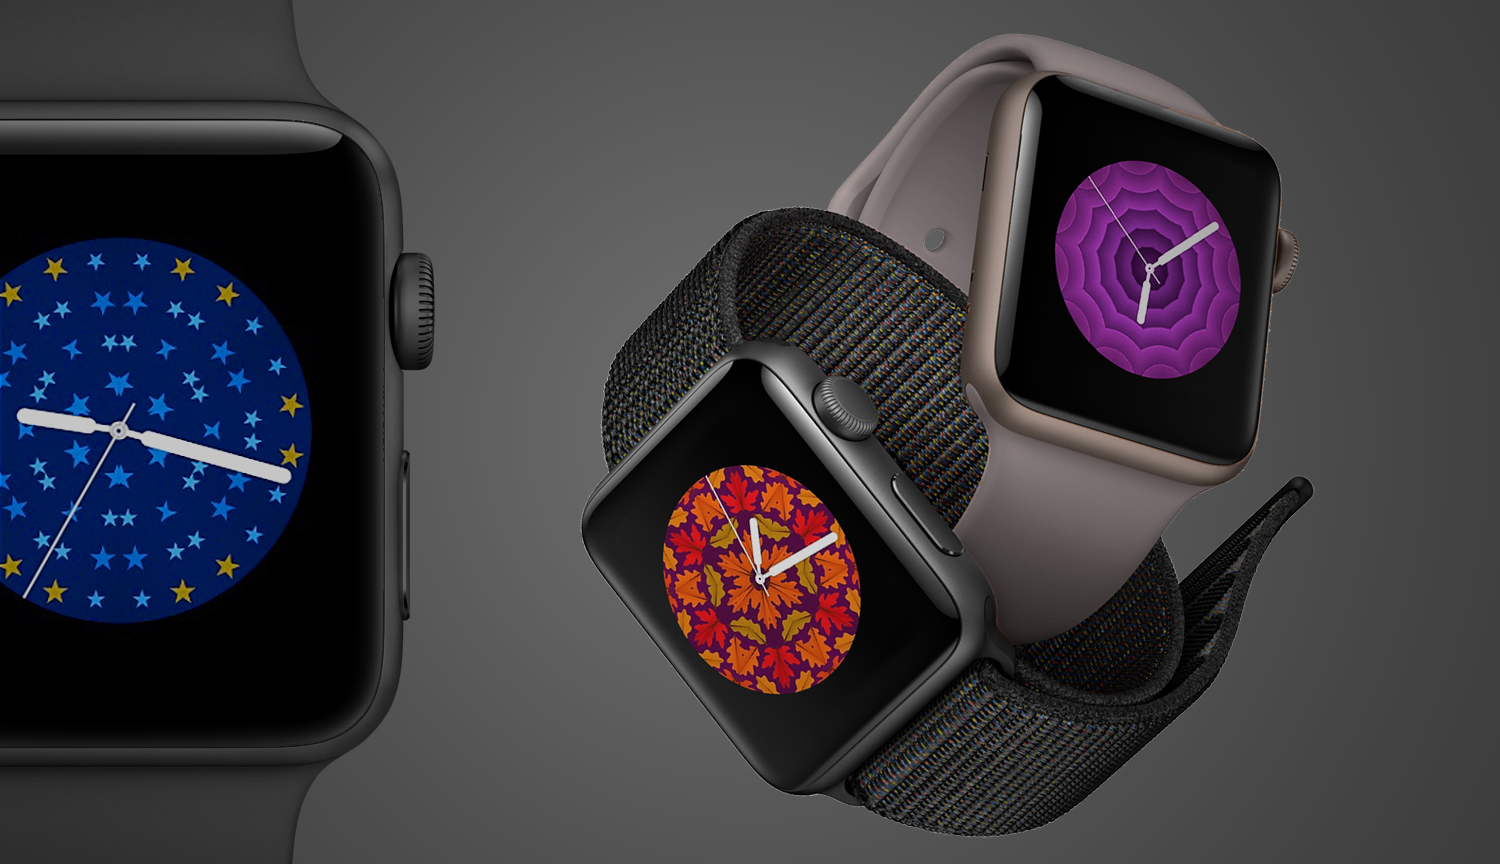 Apple Watch Faces -